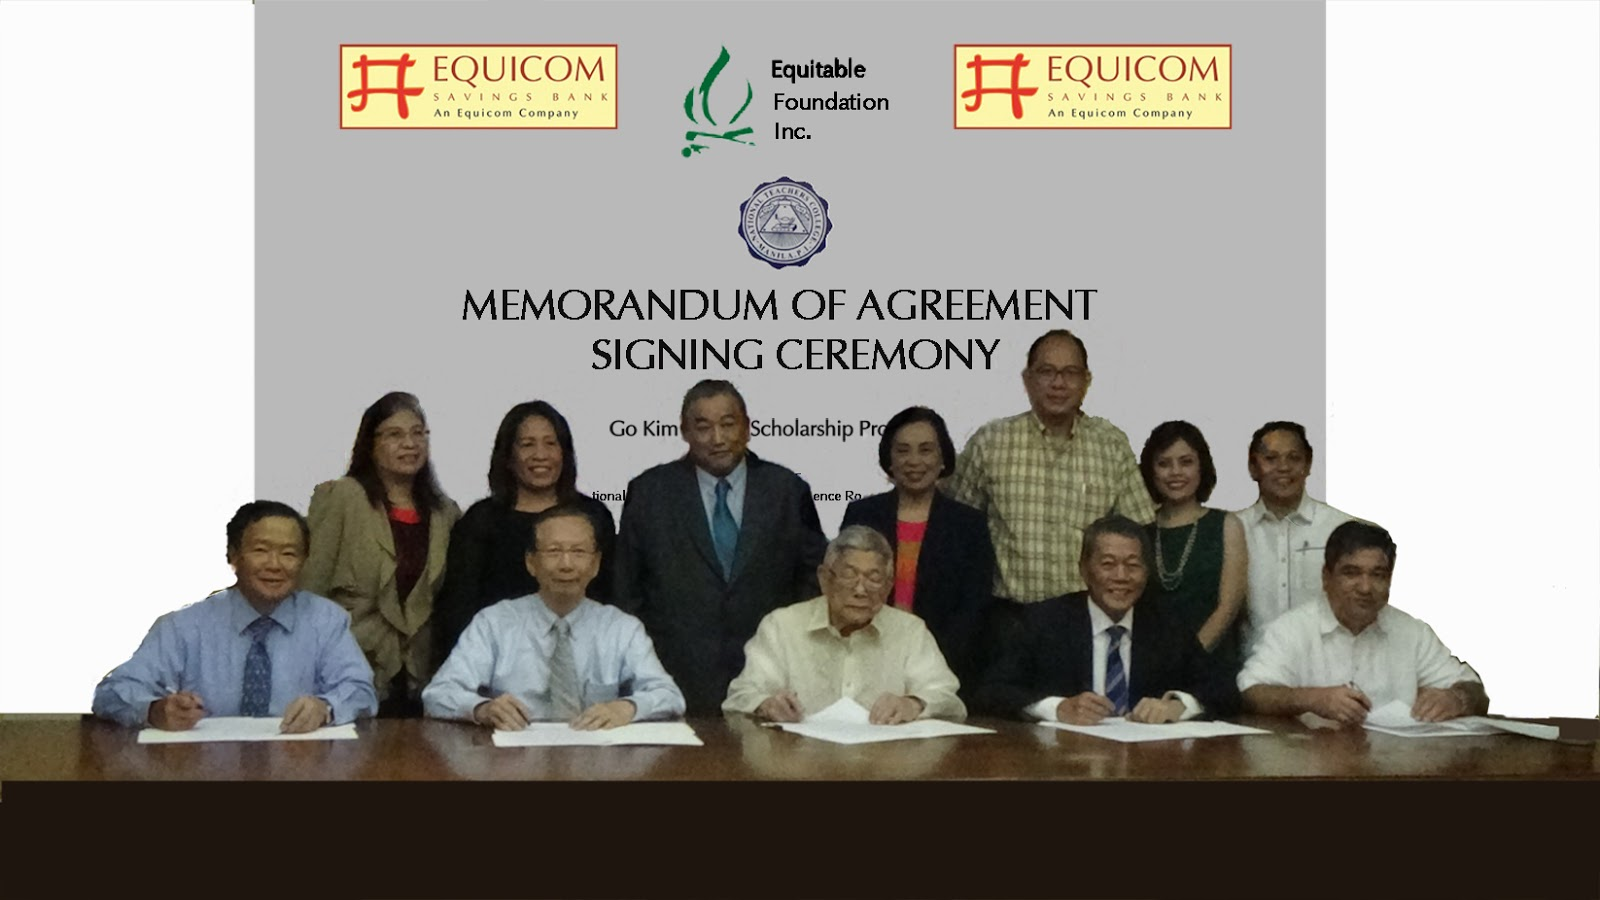 Equicom Group, Equicom Savings Bank and NTC MOA Signing